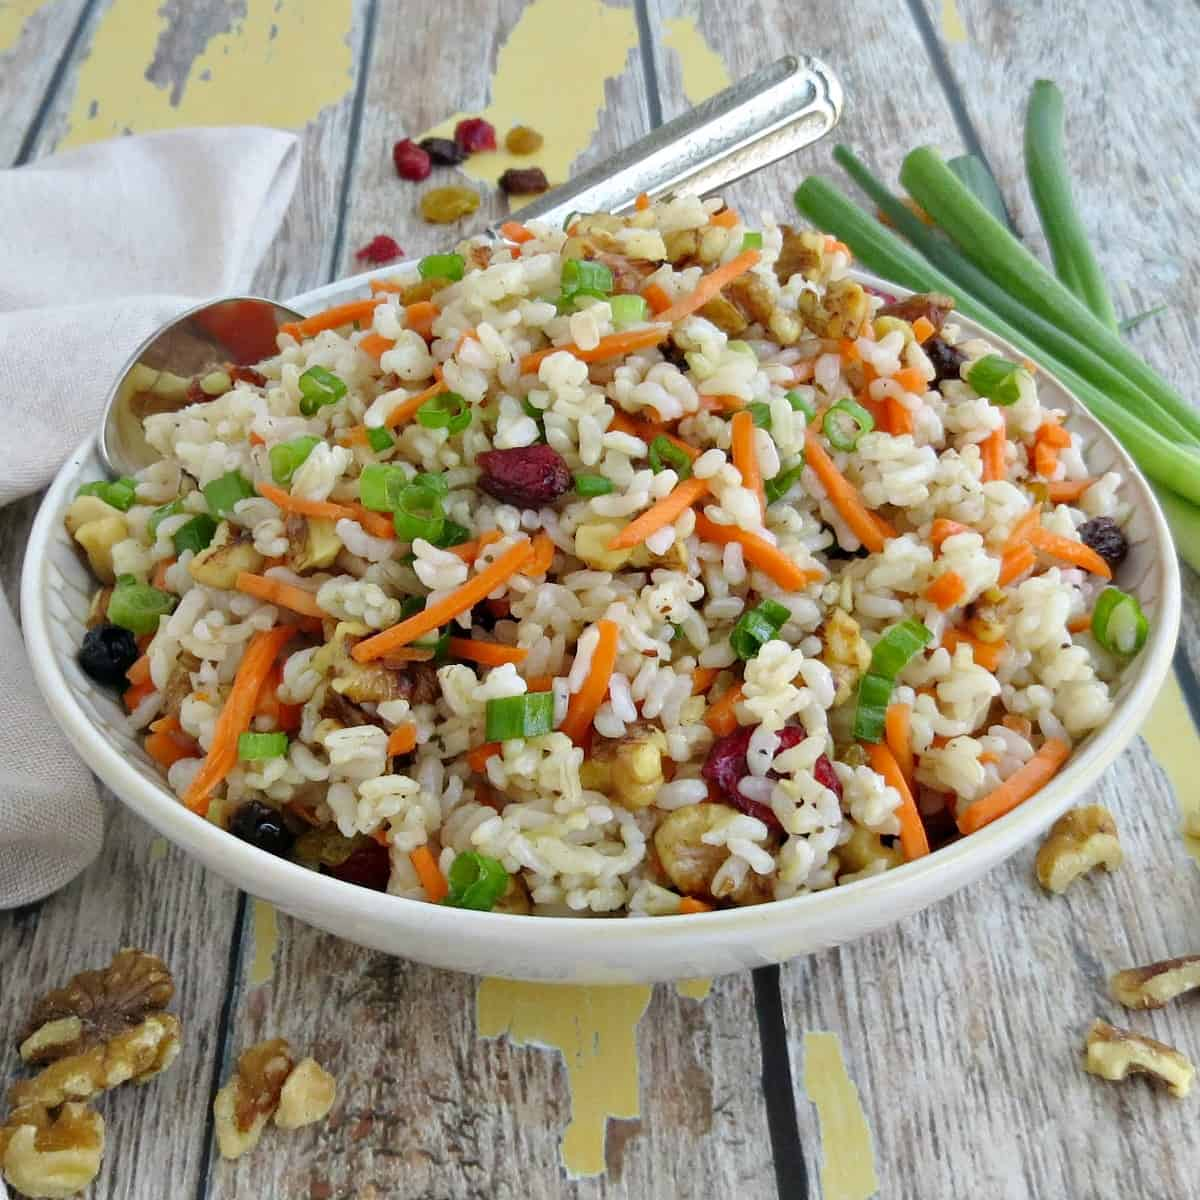 Sweet and Savory Rice Salad with Cranberries Walnuts